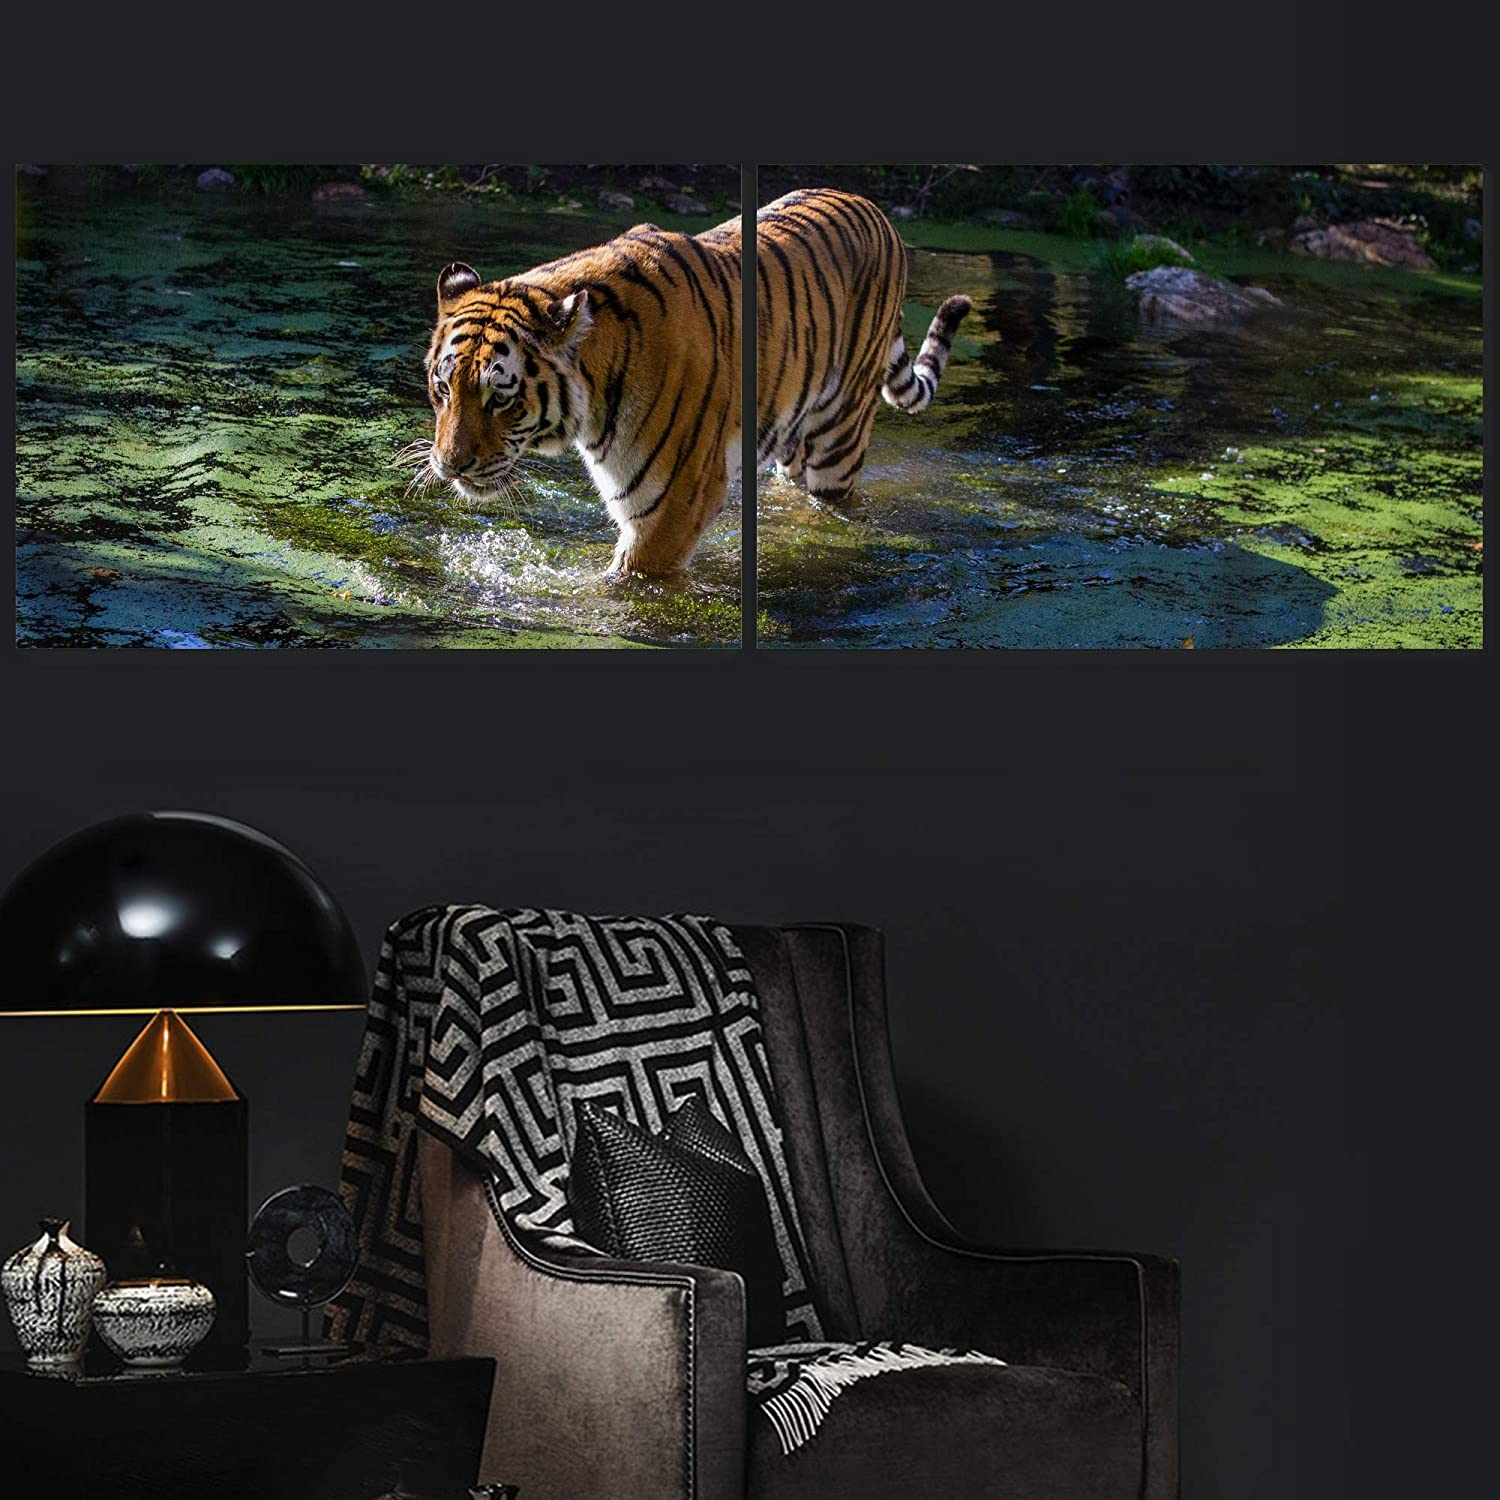 Color-Banner 2 Pieces Canvas Wall Art Proud Tiger Modern Home Arts as Decorations for Bedroom, Living Room - 16x24 x 2 Panels